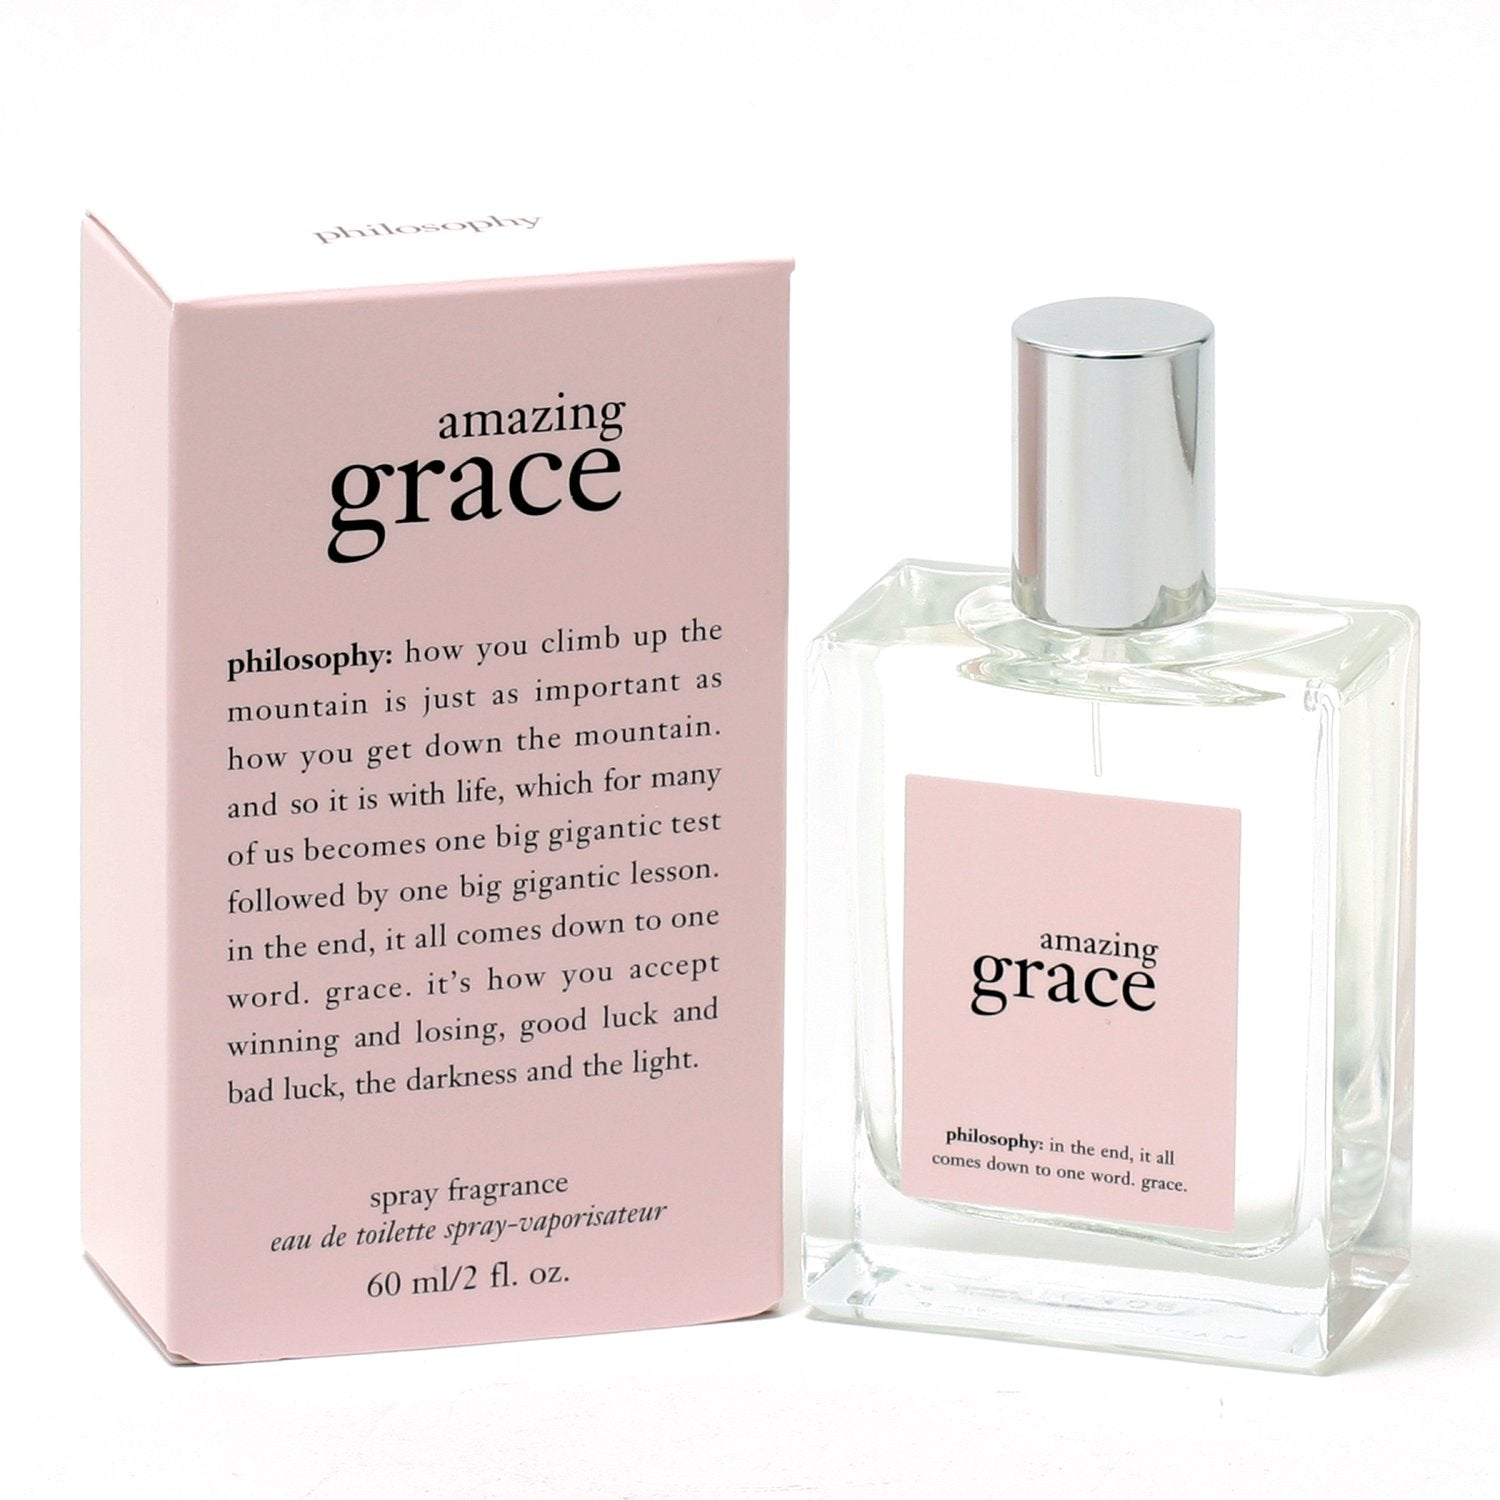 Perfume - AMAZING GRACE FOR WOMEN BY PHILOSOPHY - EAU DE TOILETTE SPRAY, 2.0 OZ